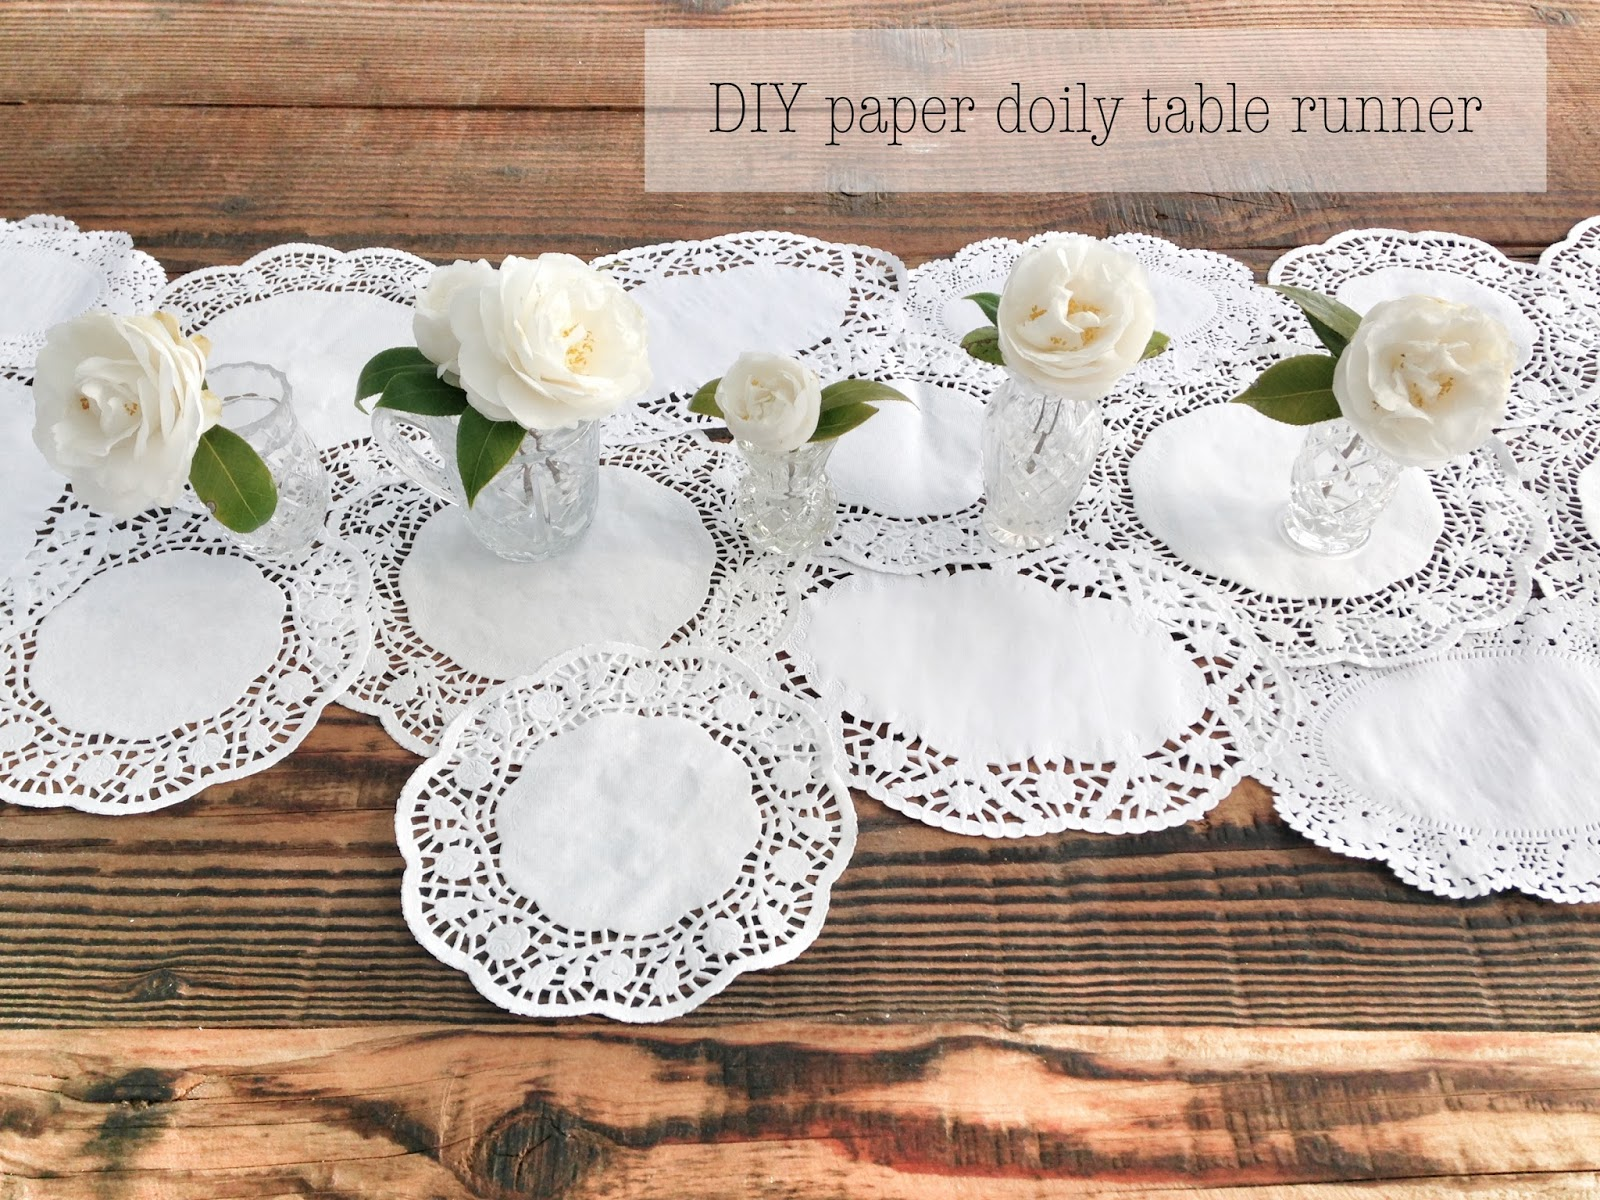 buy paper doilies You can buy paper doilies at wholesale prices 1-800-383-4315 search  the prices of these paper doilies wholesale start from just $399 per pack of 100 doilies.